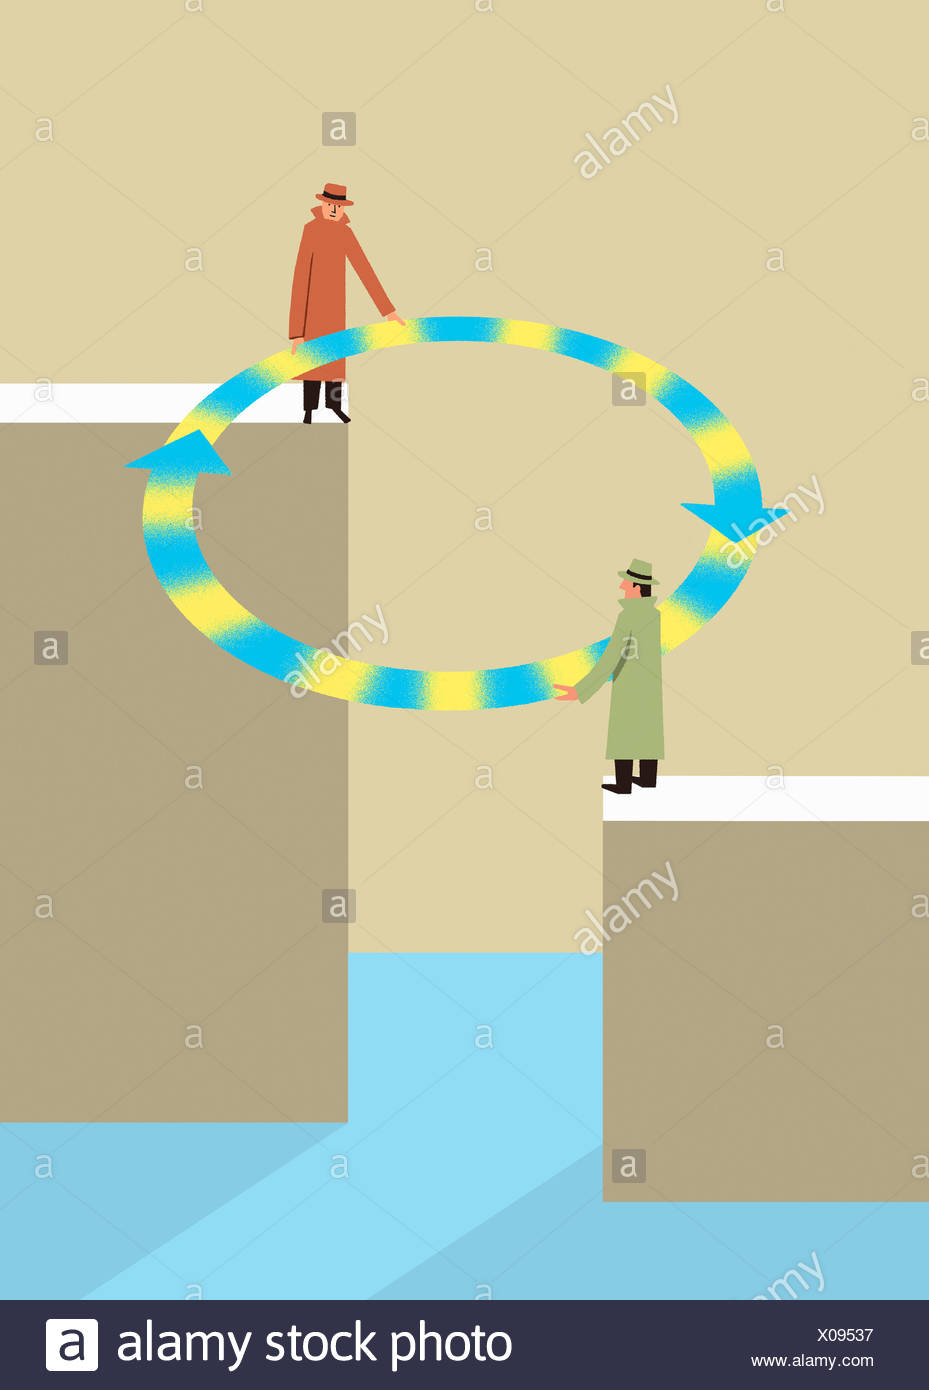 Businessmen bridging the gap with circle of arrows - Stock Image